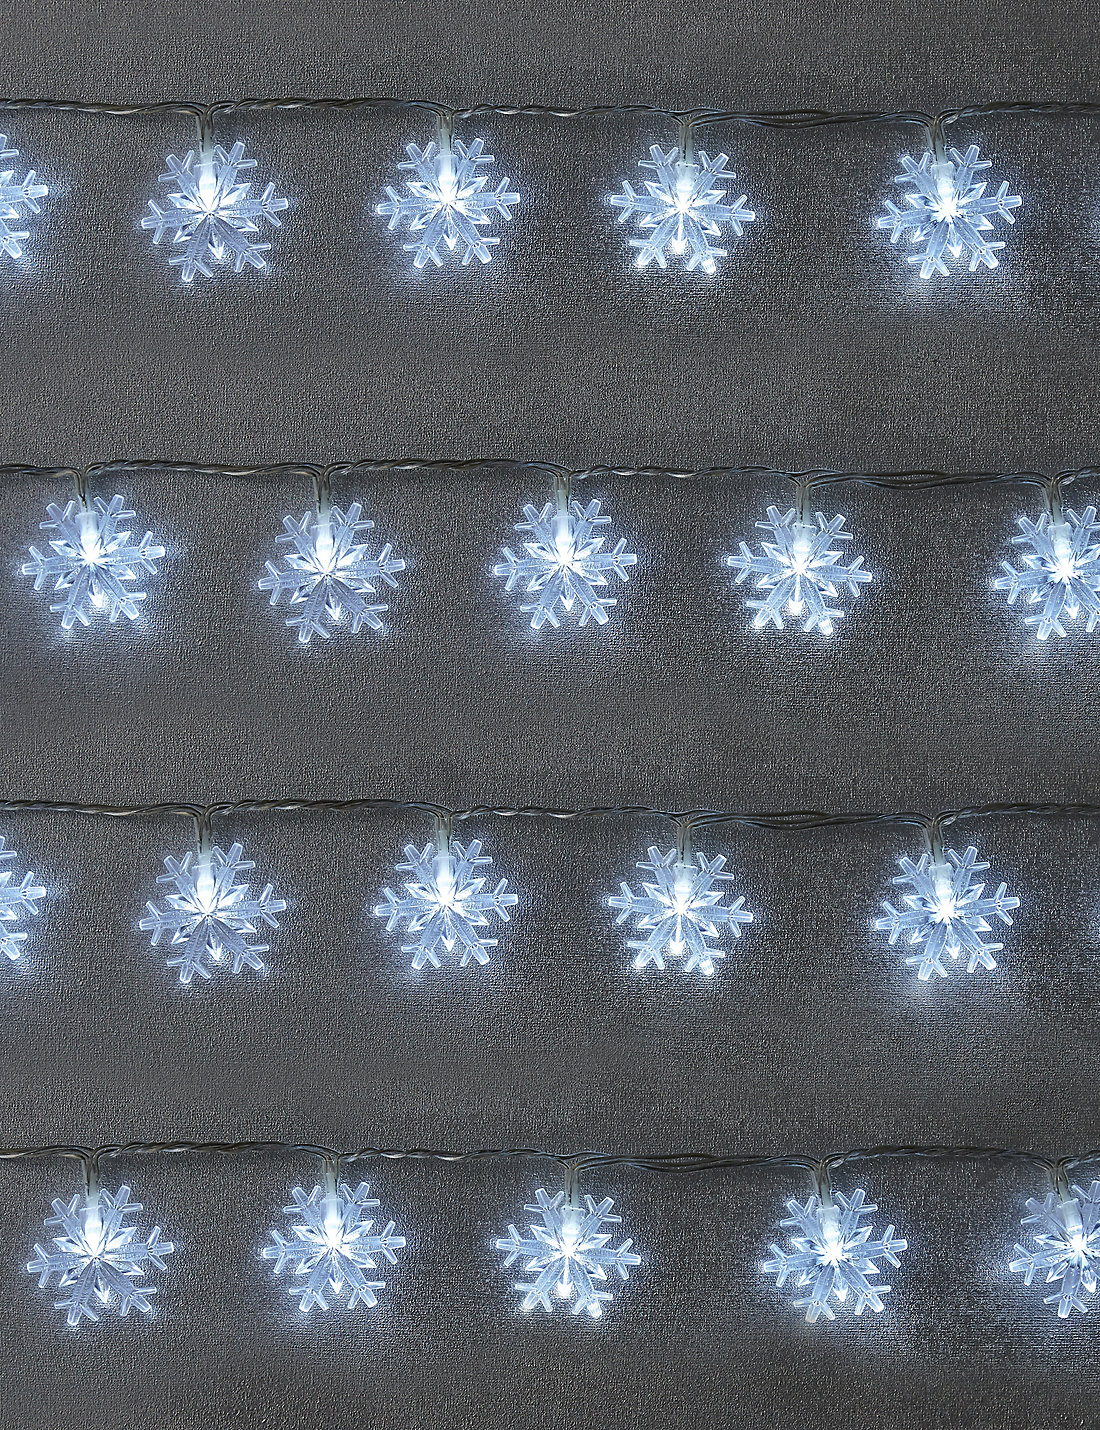 80 Snowflake Outdoor Lights £35 Click to visit M&S